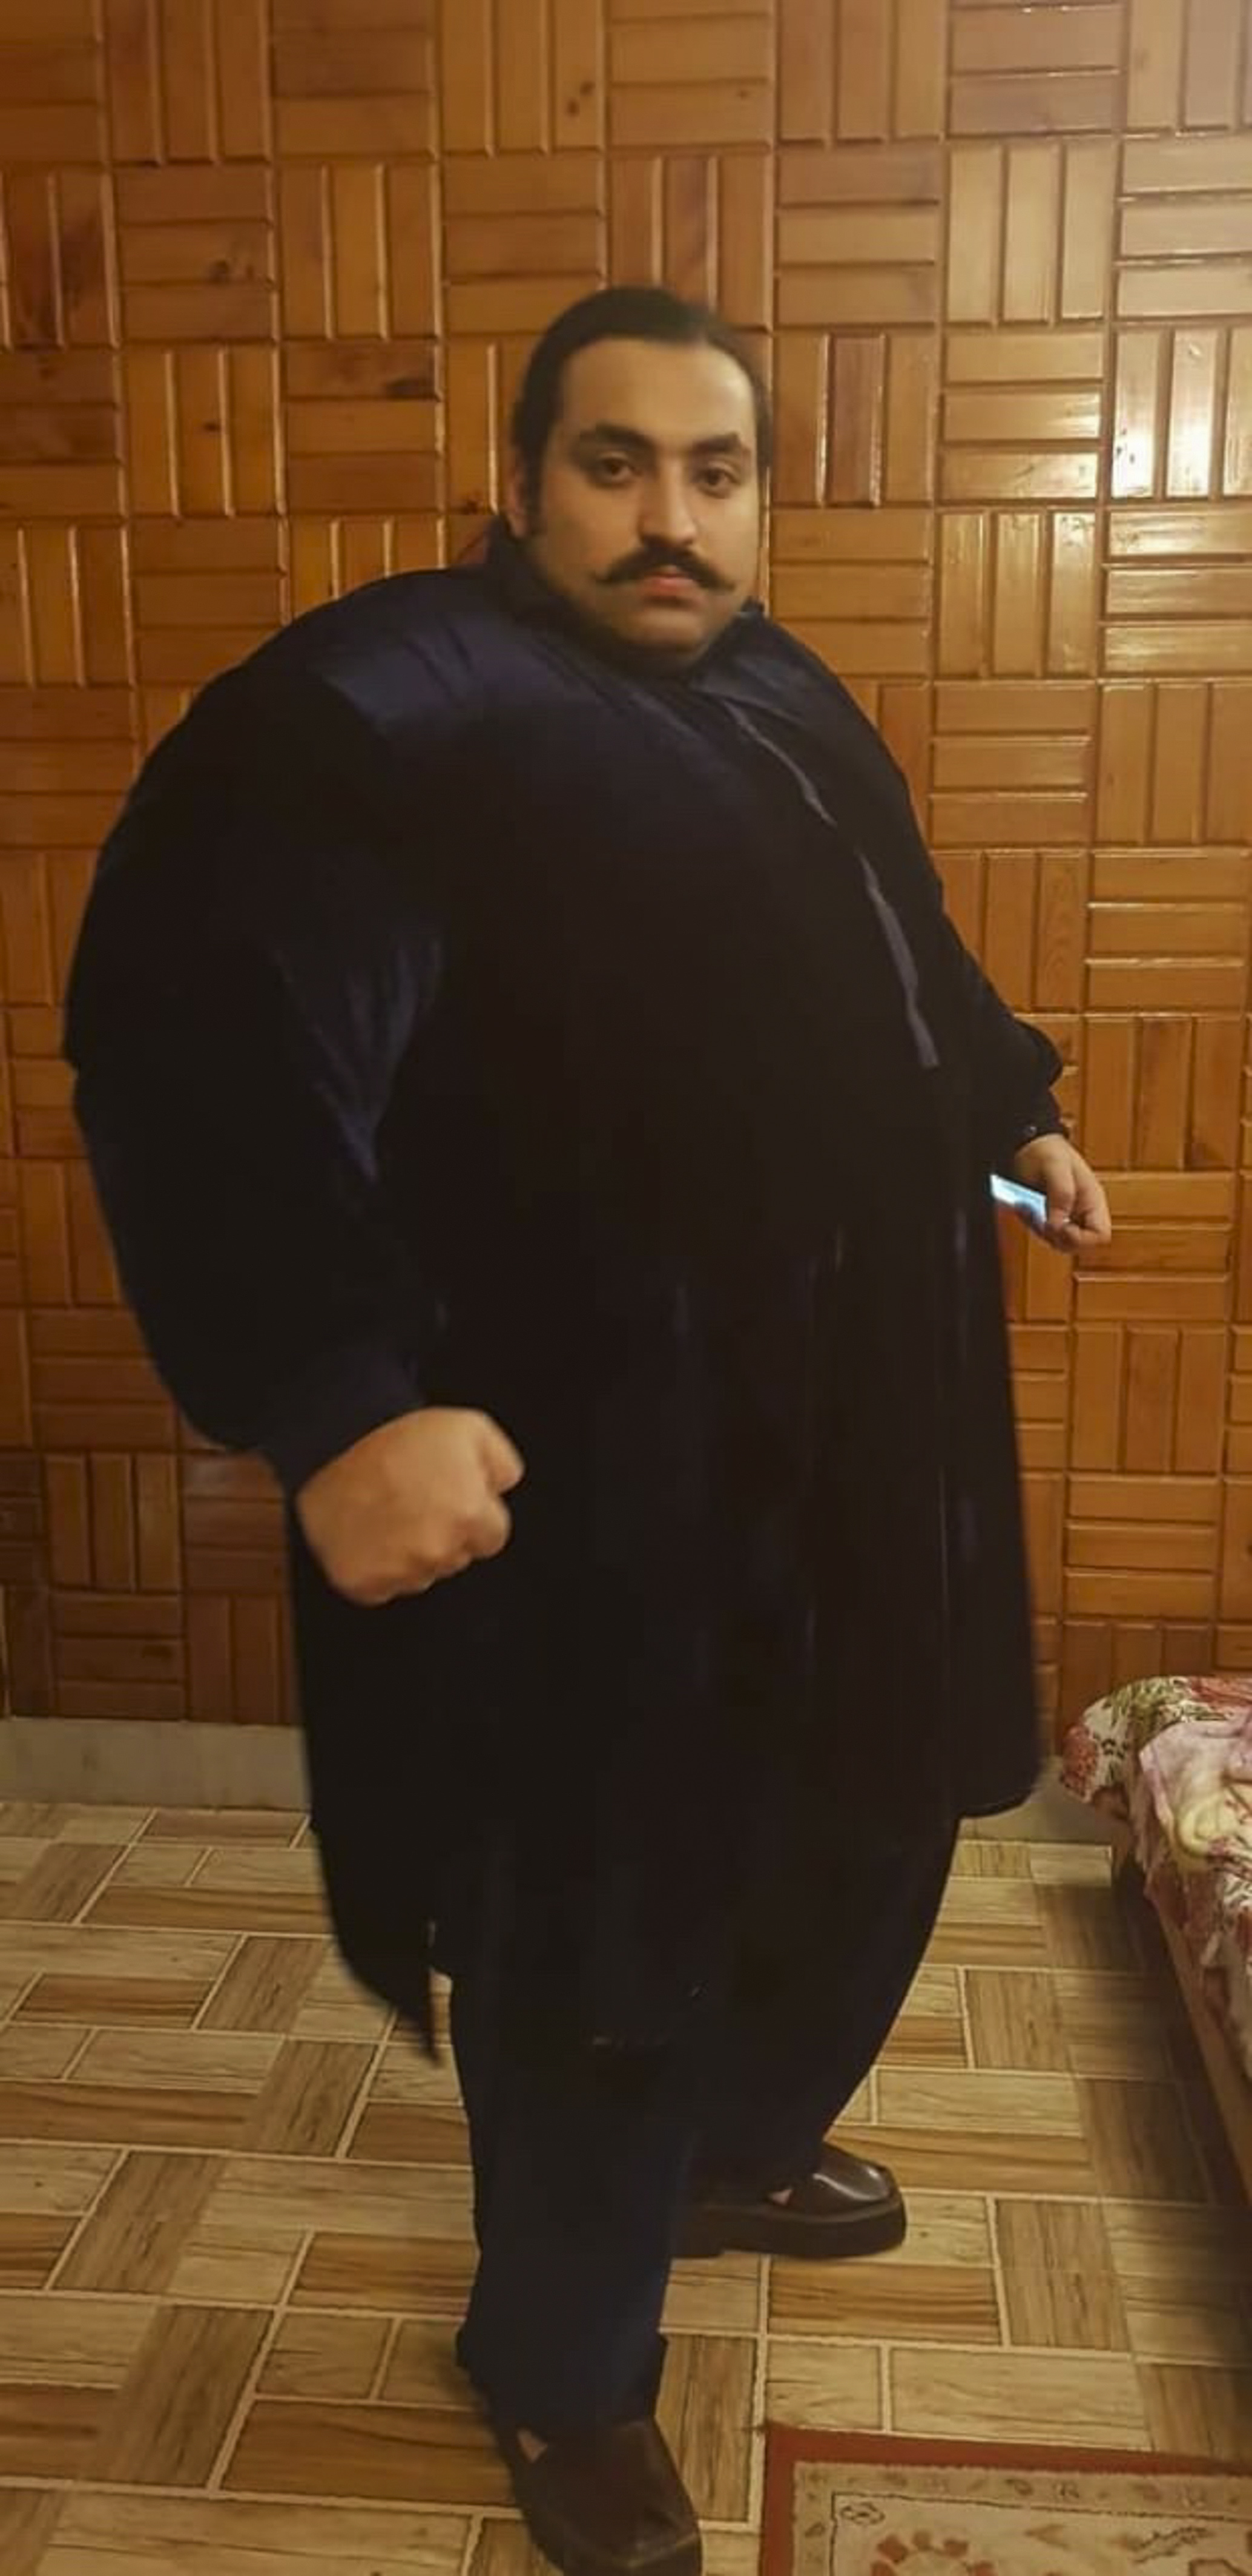 70 stone man wants to find wife 1